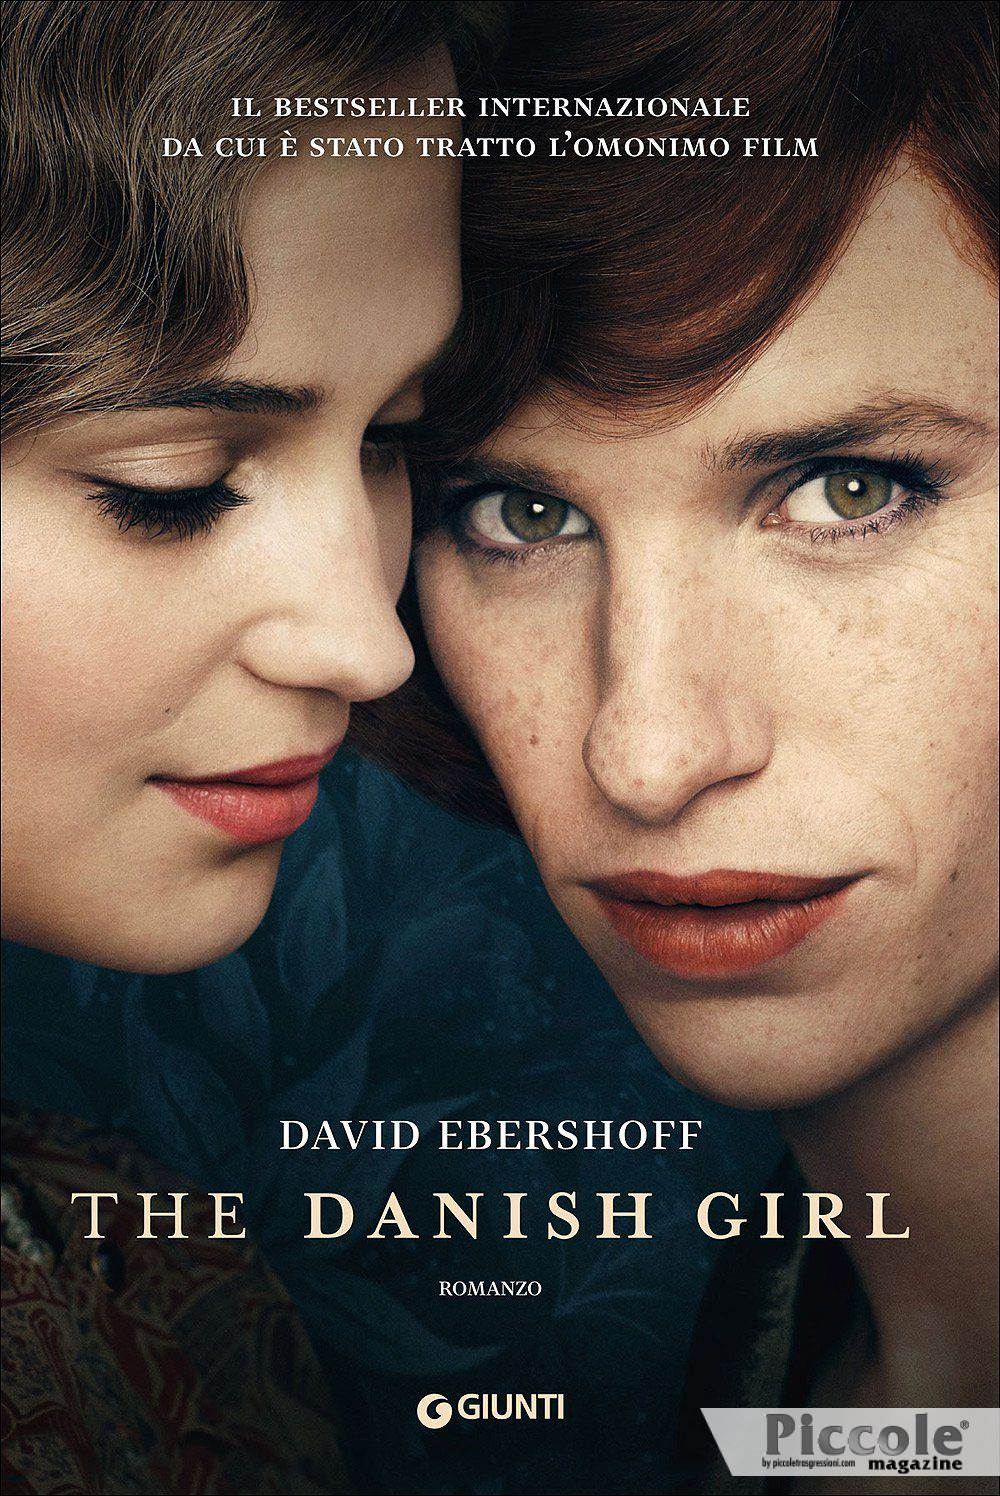 Foto copertina del libro The Danish Girl di David Ebershoff